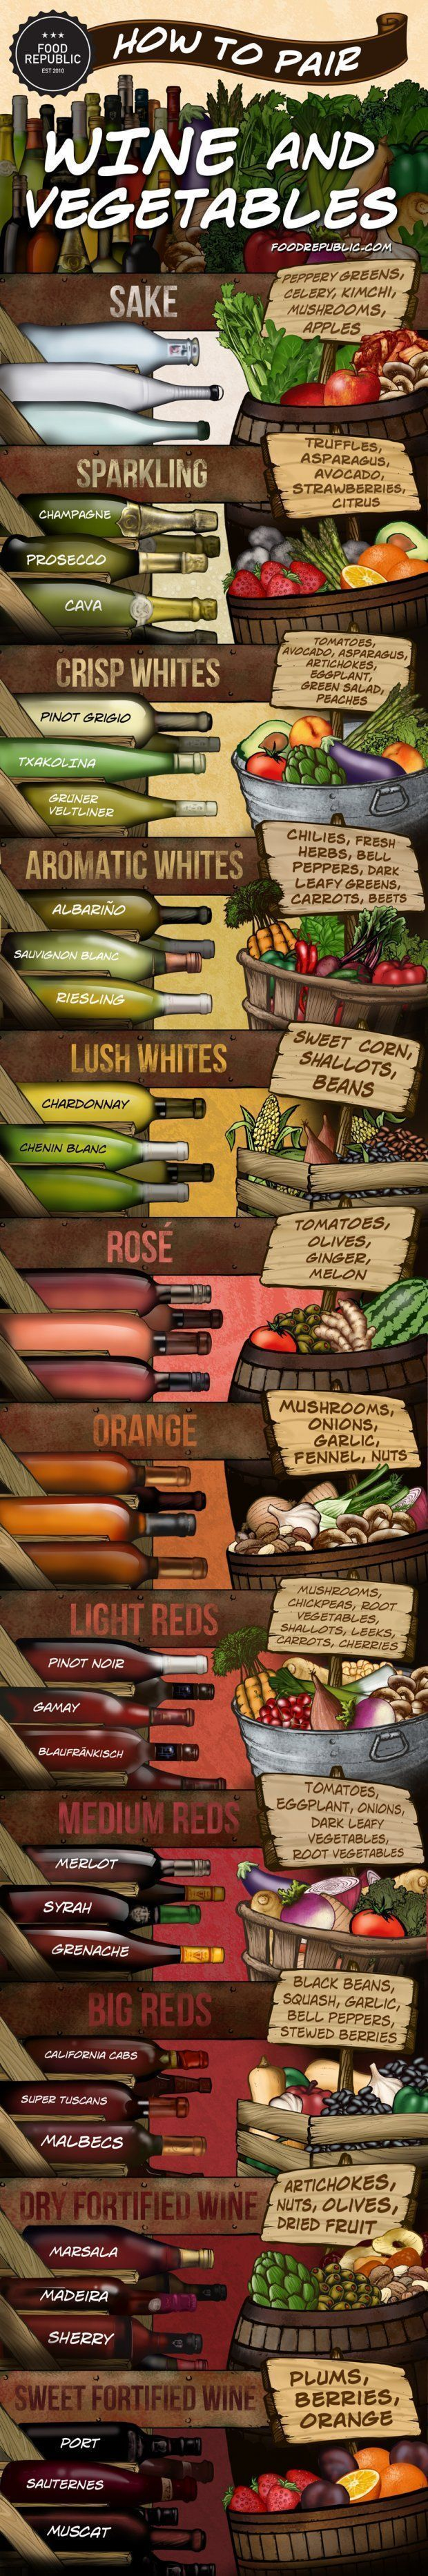 Wine Infographic: How To Pair Wine And Vegetables - Grilled of course! #winepairings http://grillidea.com/best-electric-grills/ http://grillingideas.org/how-to-use-electric-grill/